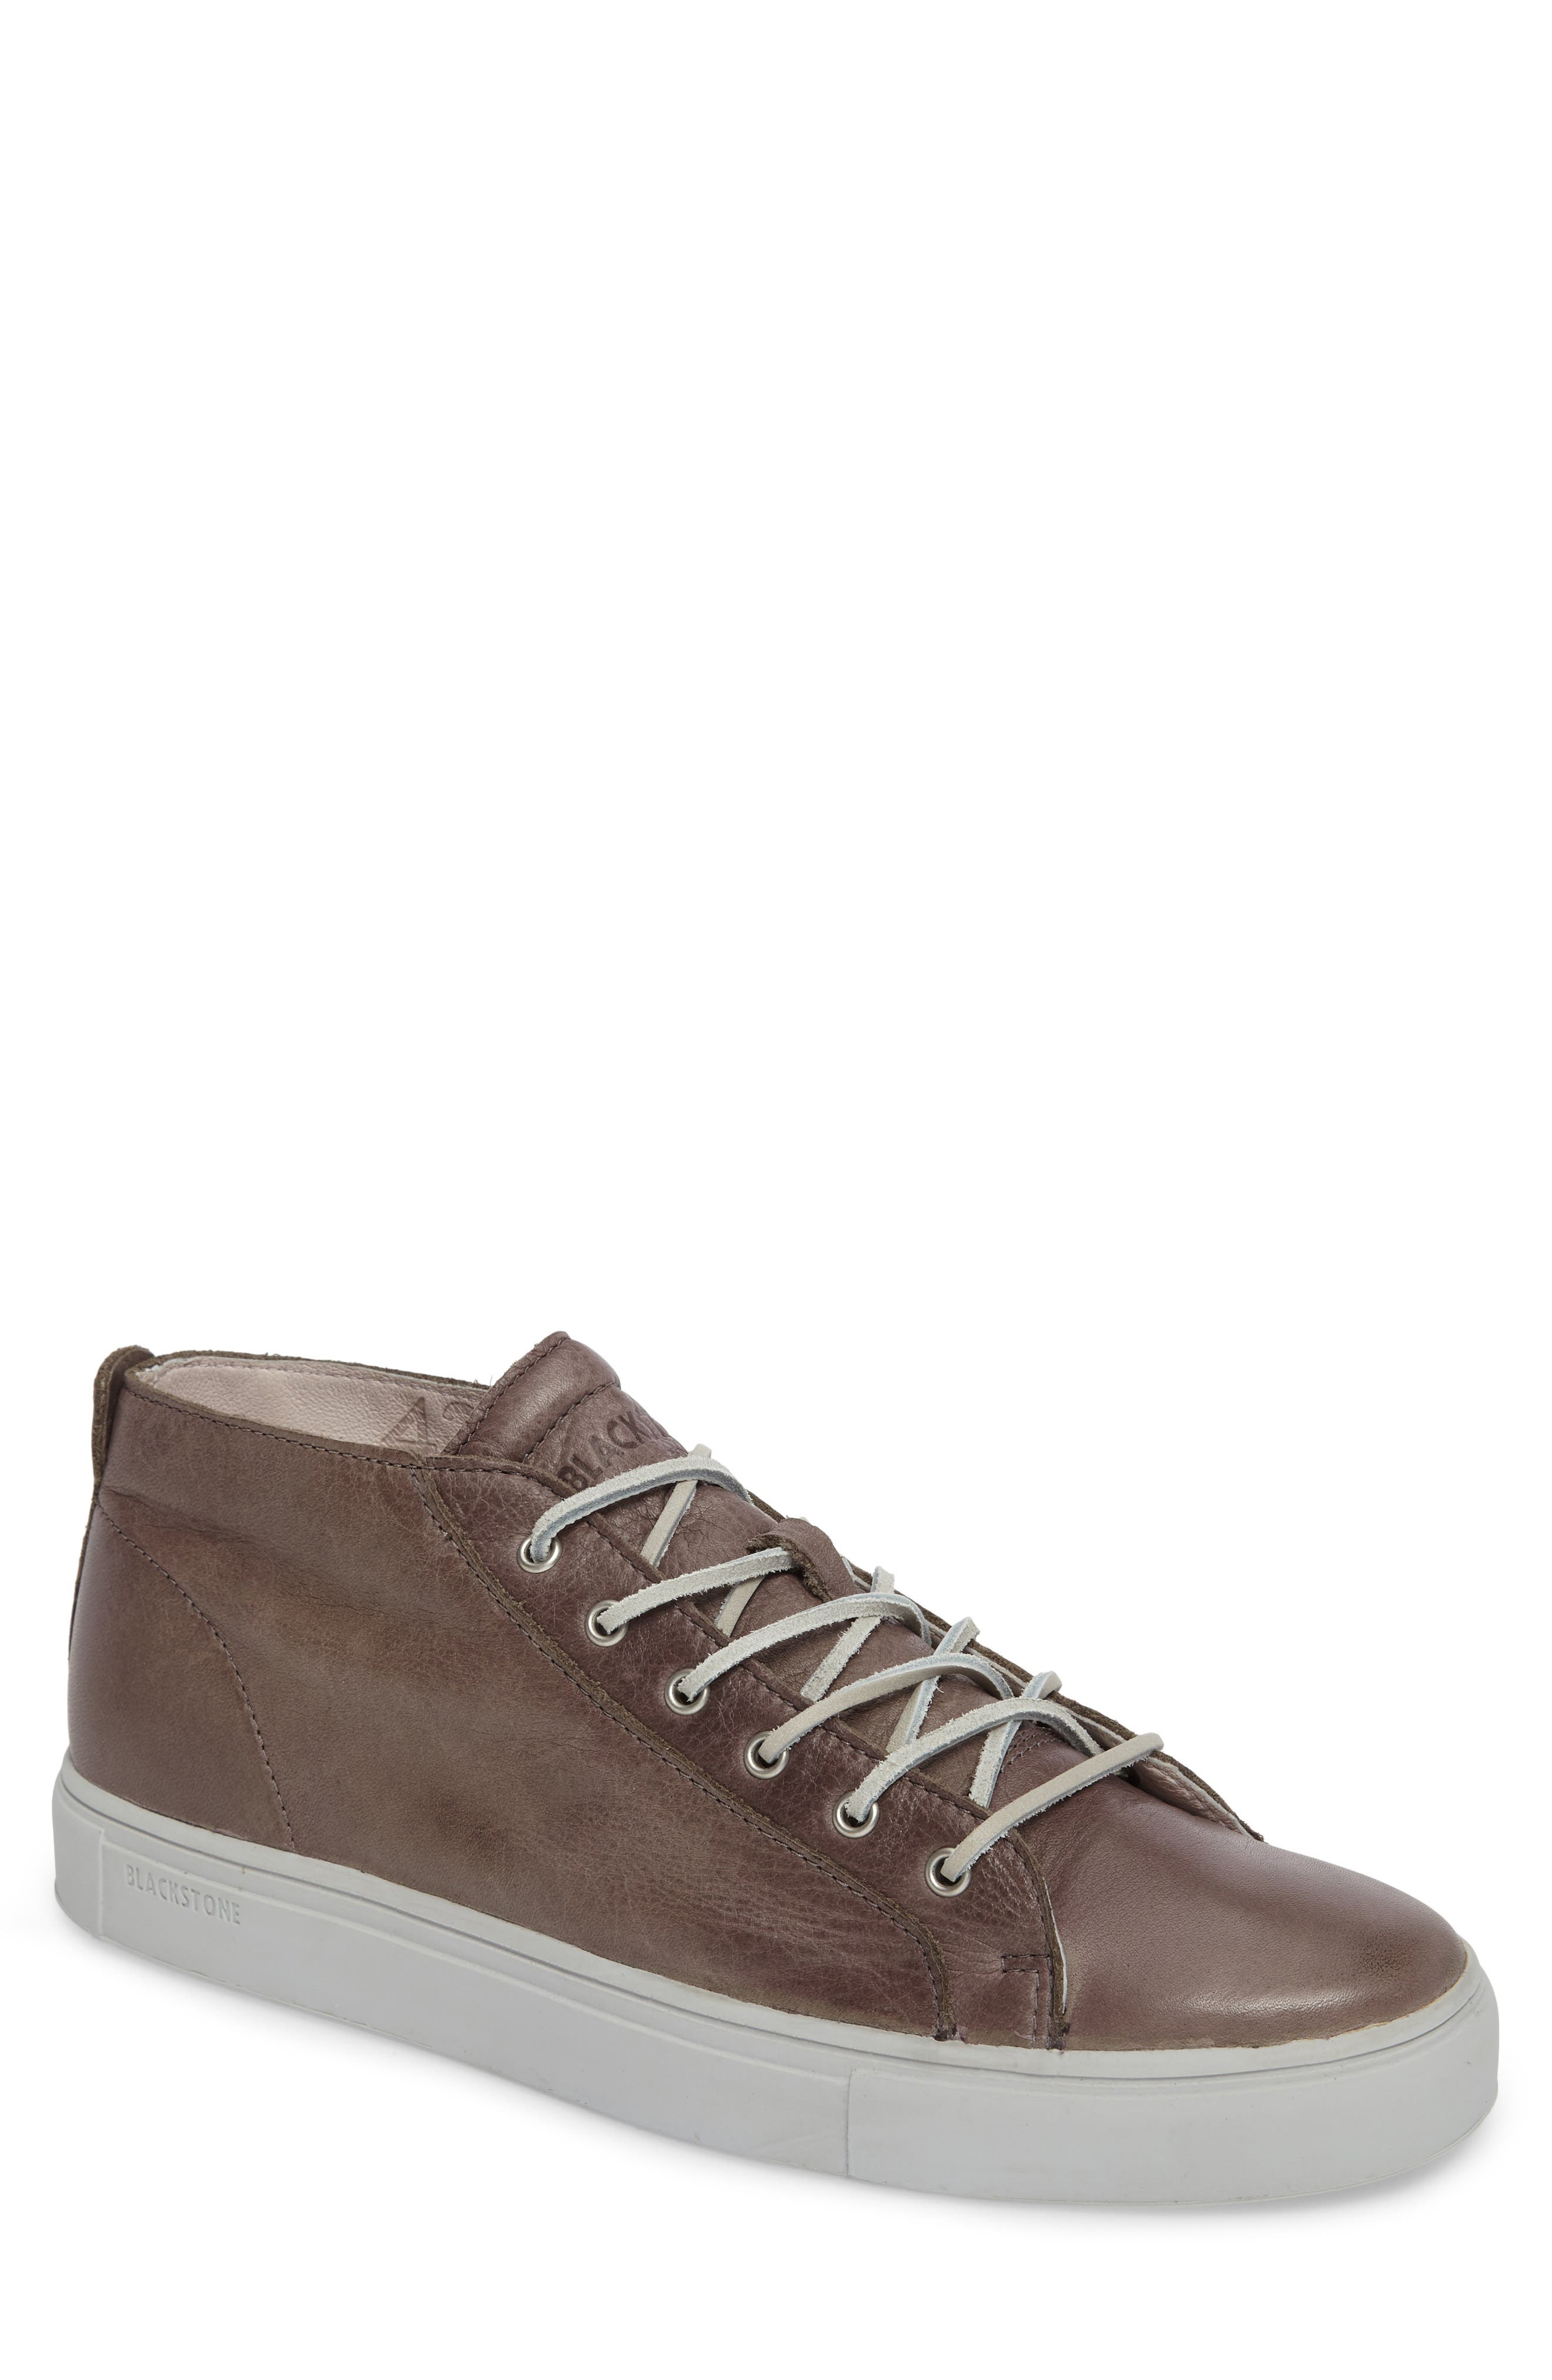 'LM11' Sneaker,                         Main,                         color, 020